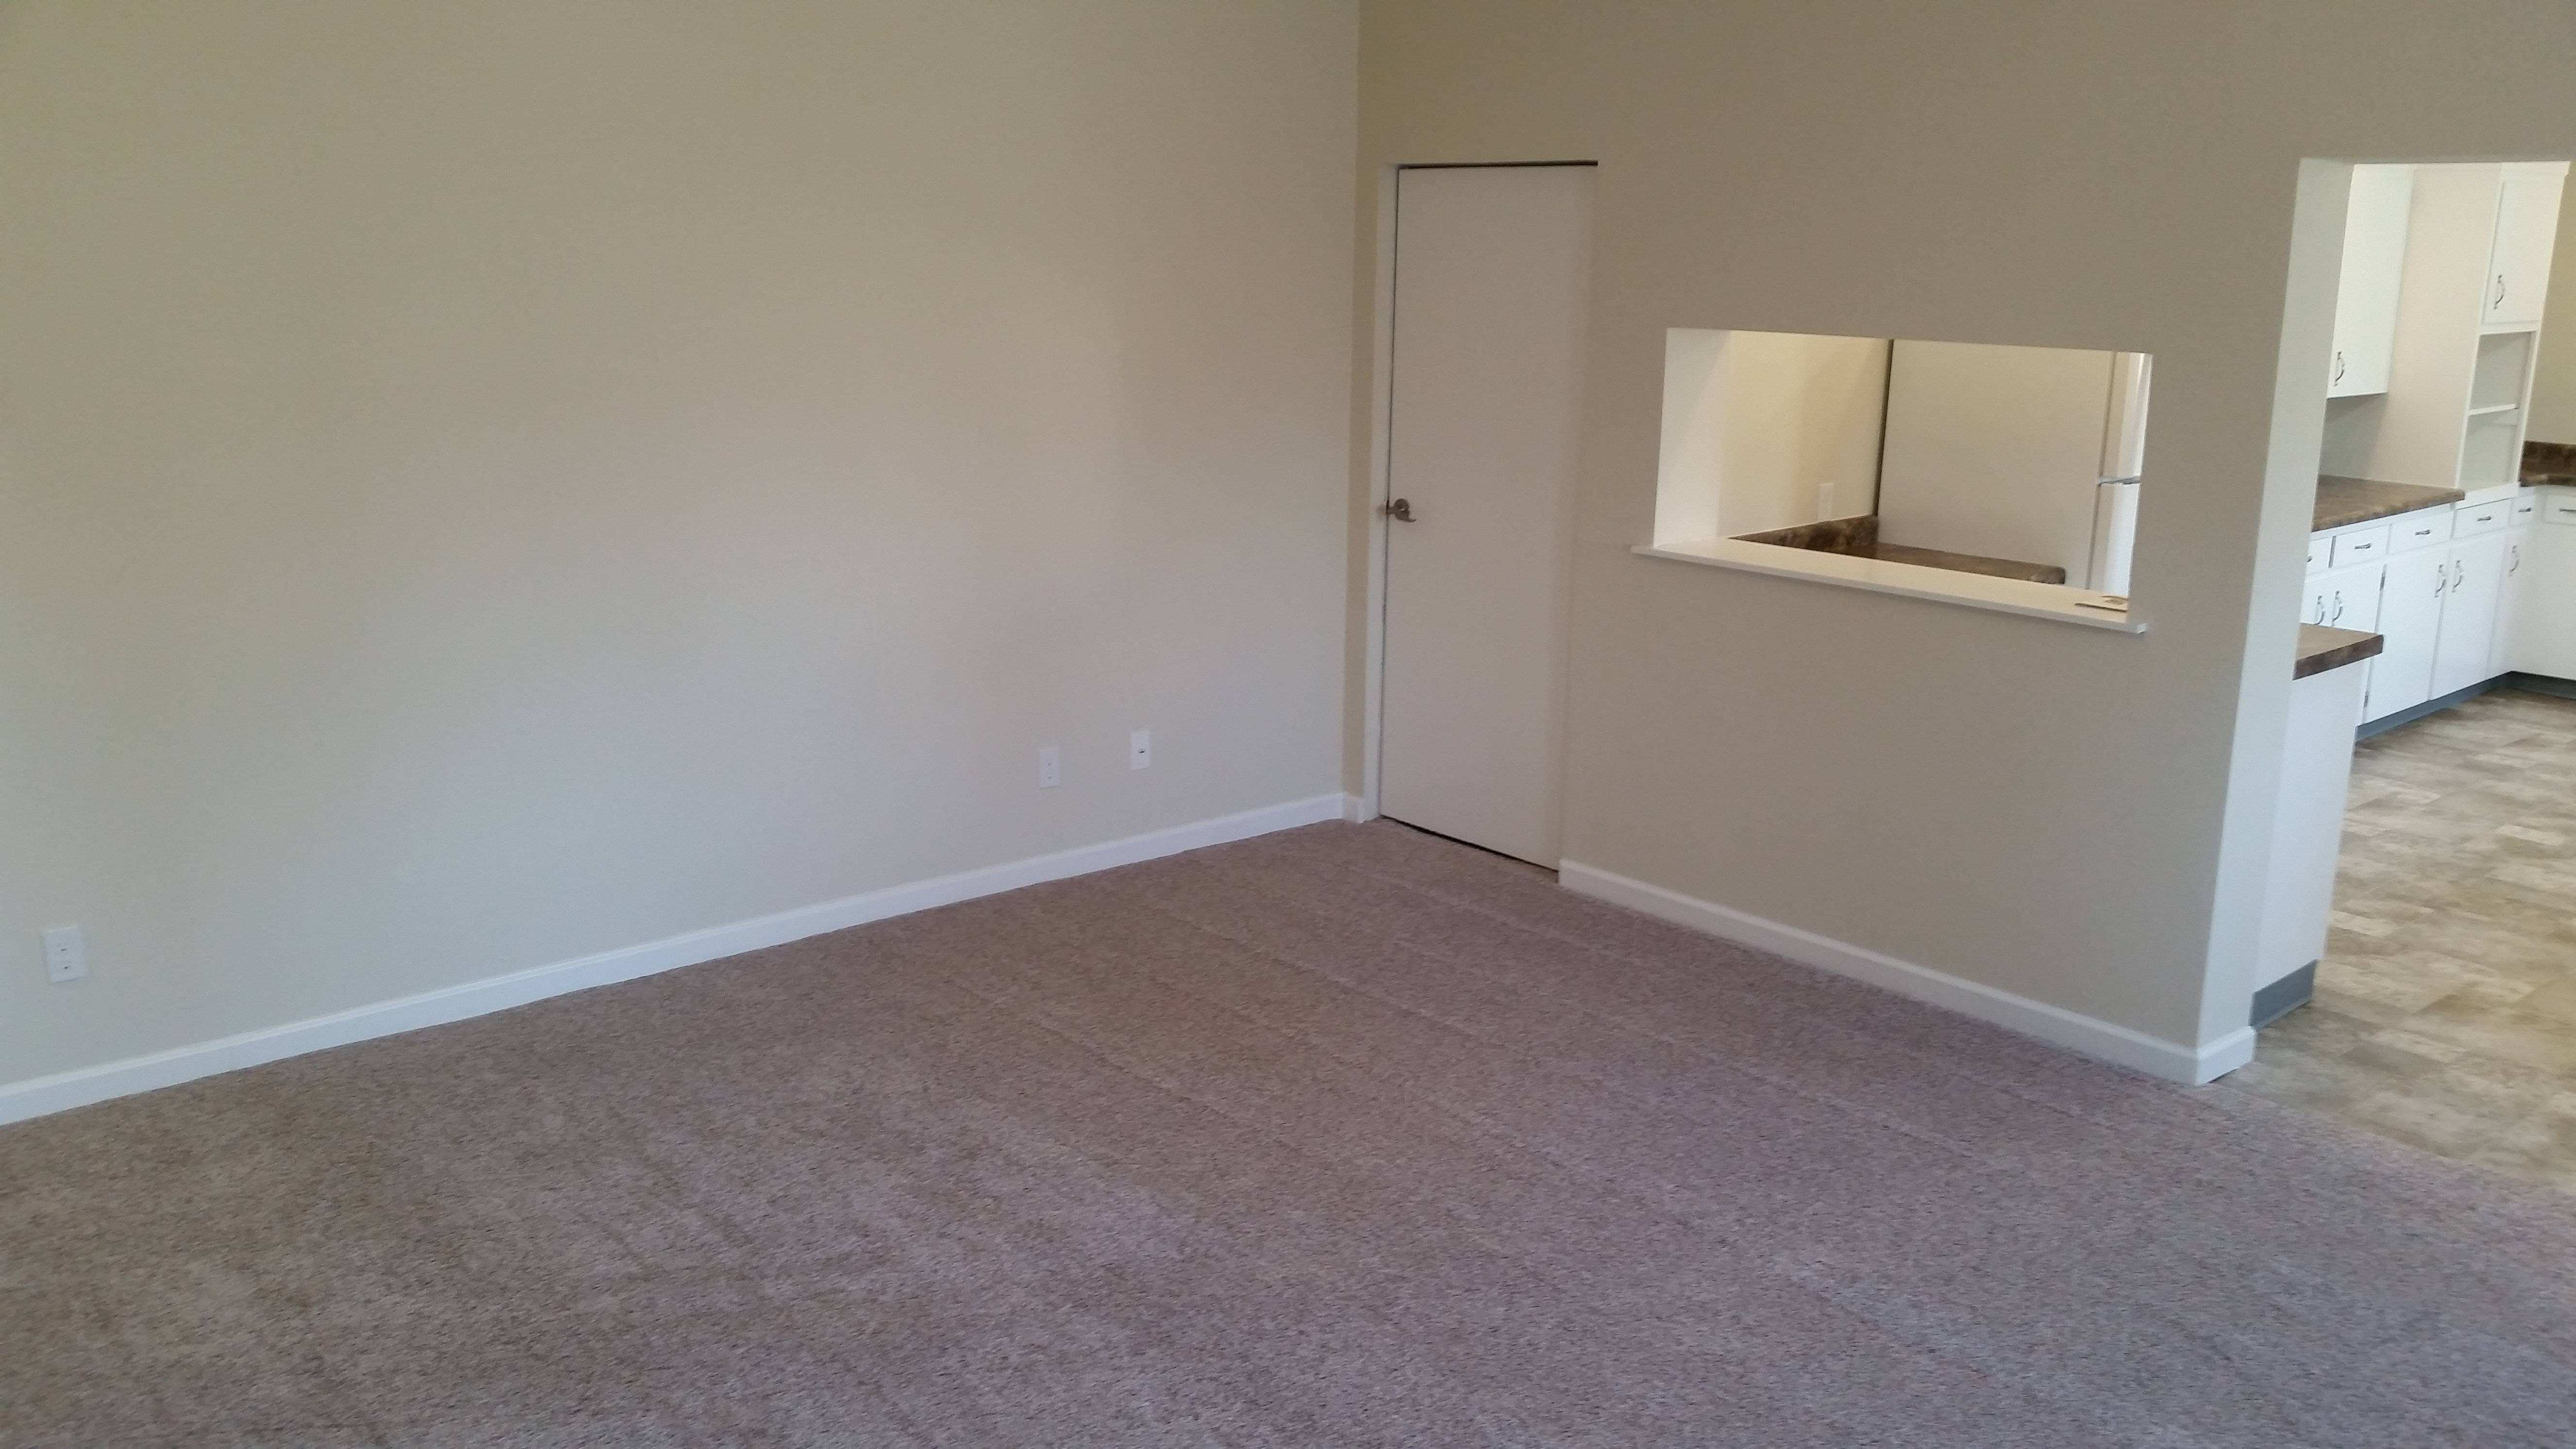 Chadron rentals rental houses apartments in chadron ne - 3 bedroom apartments with utilities included ...